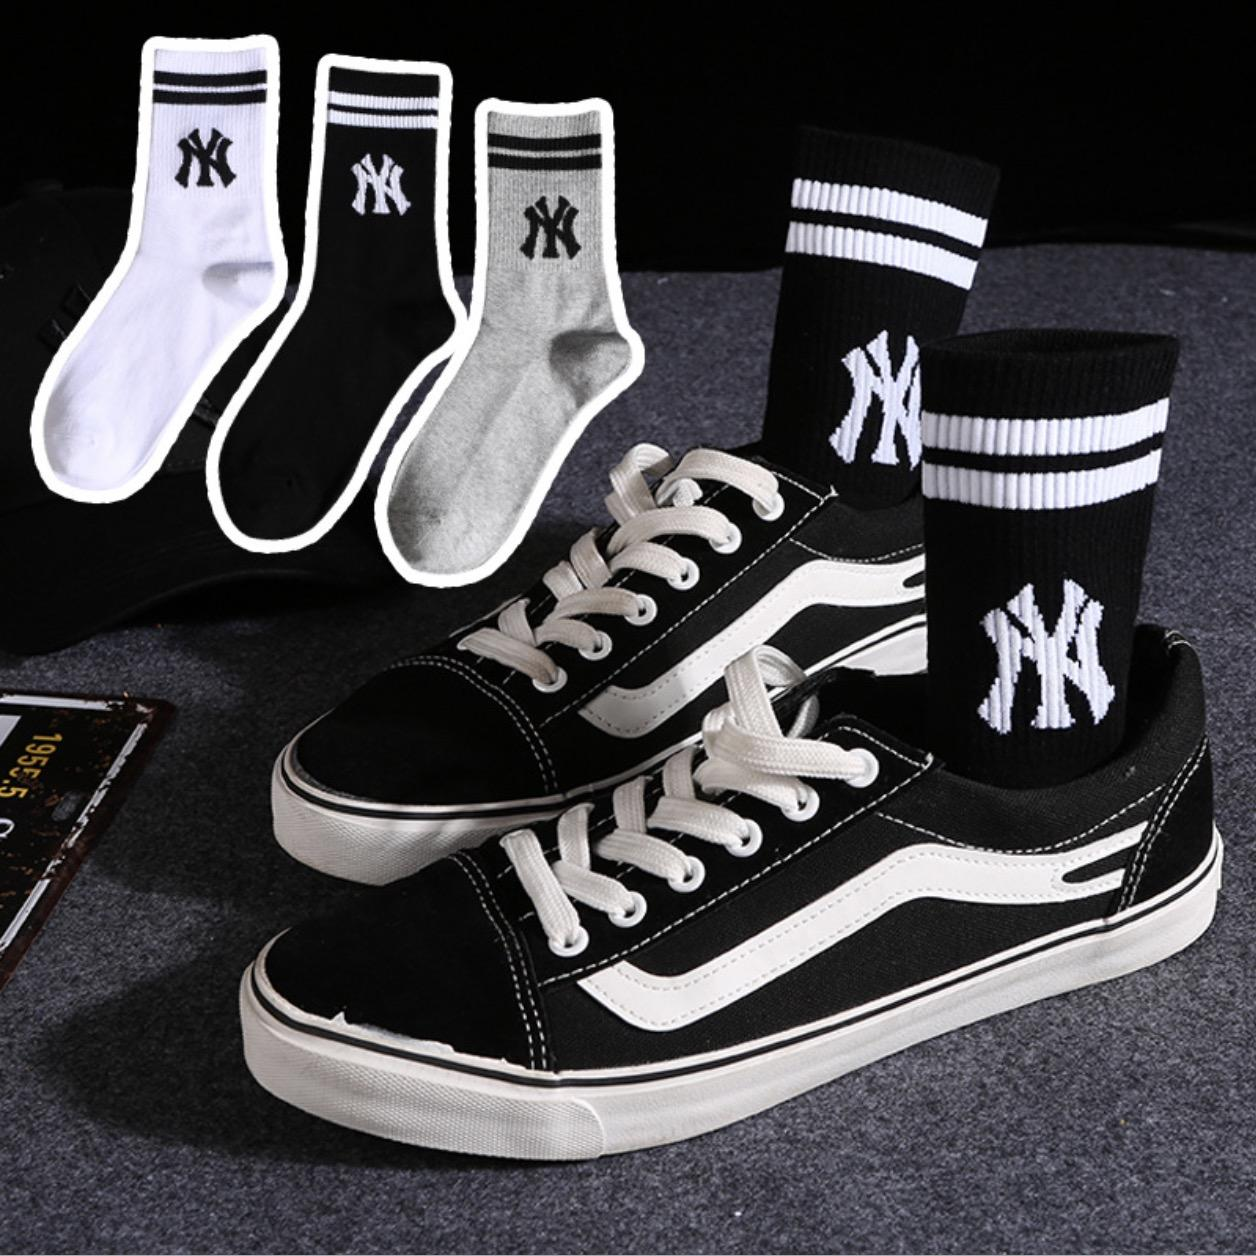 Tất Nam NY New York Crew Socks